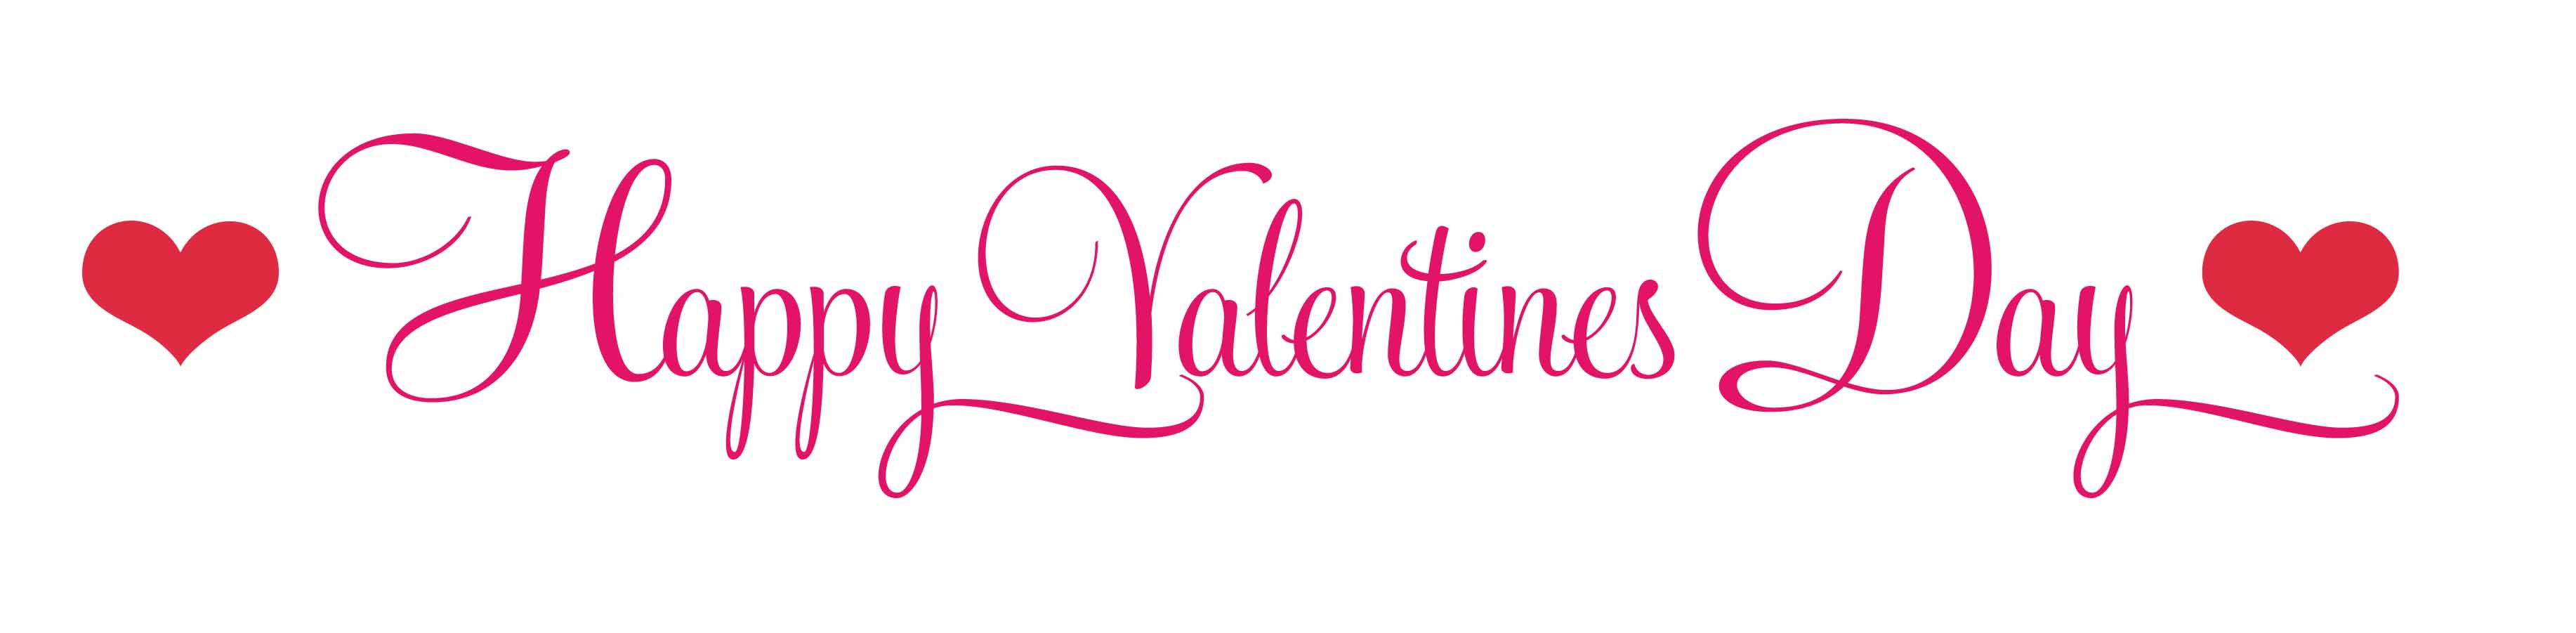 Valentines day clipart for . Valentines Day Decor More .